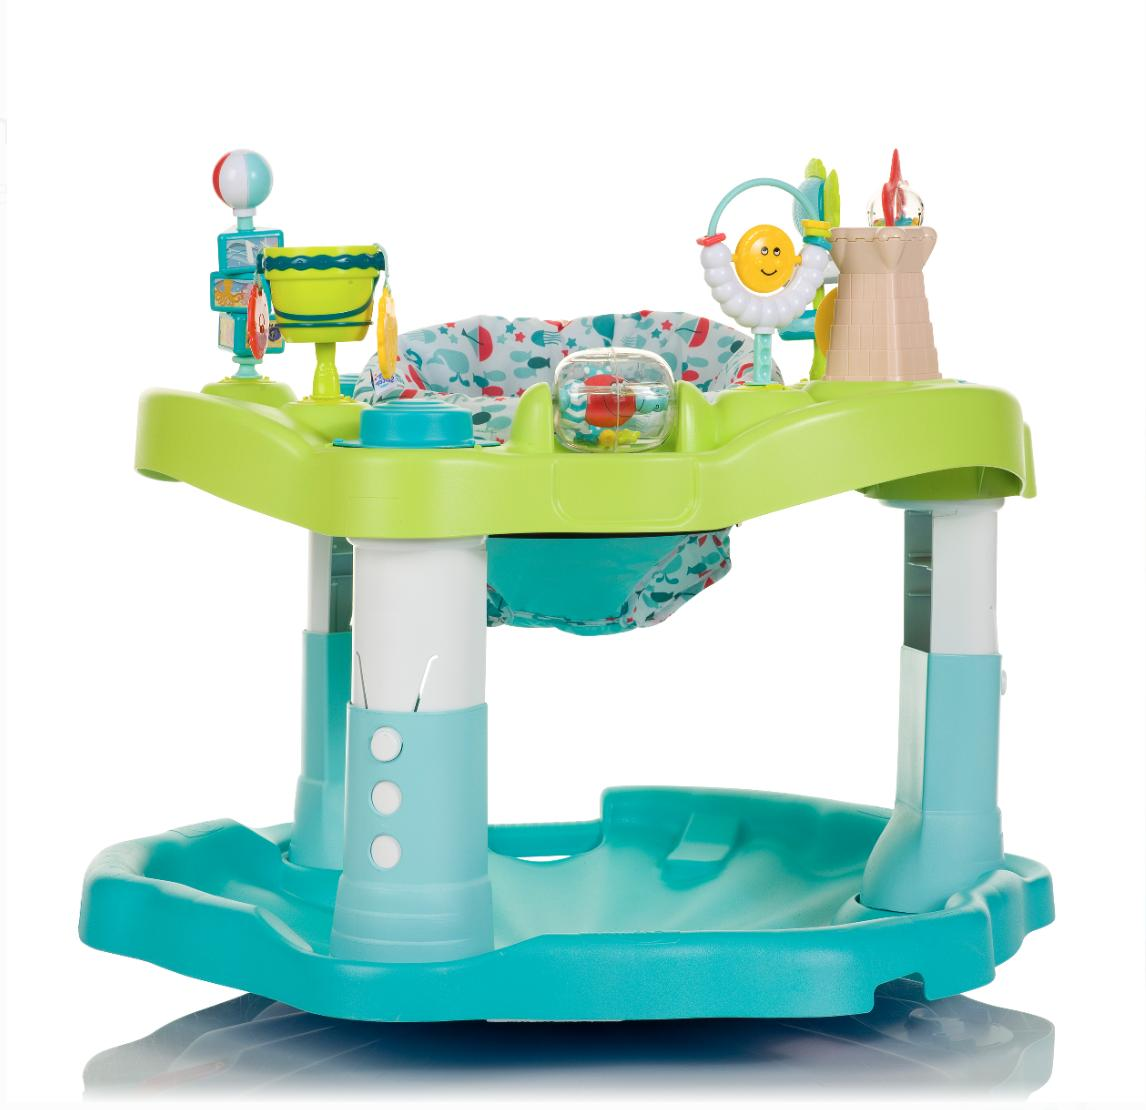 Evenflo Exersaucer Mega Splash Unique Rocking